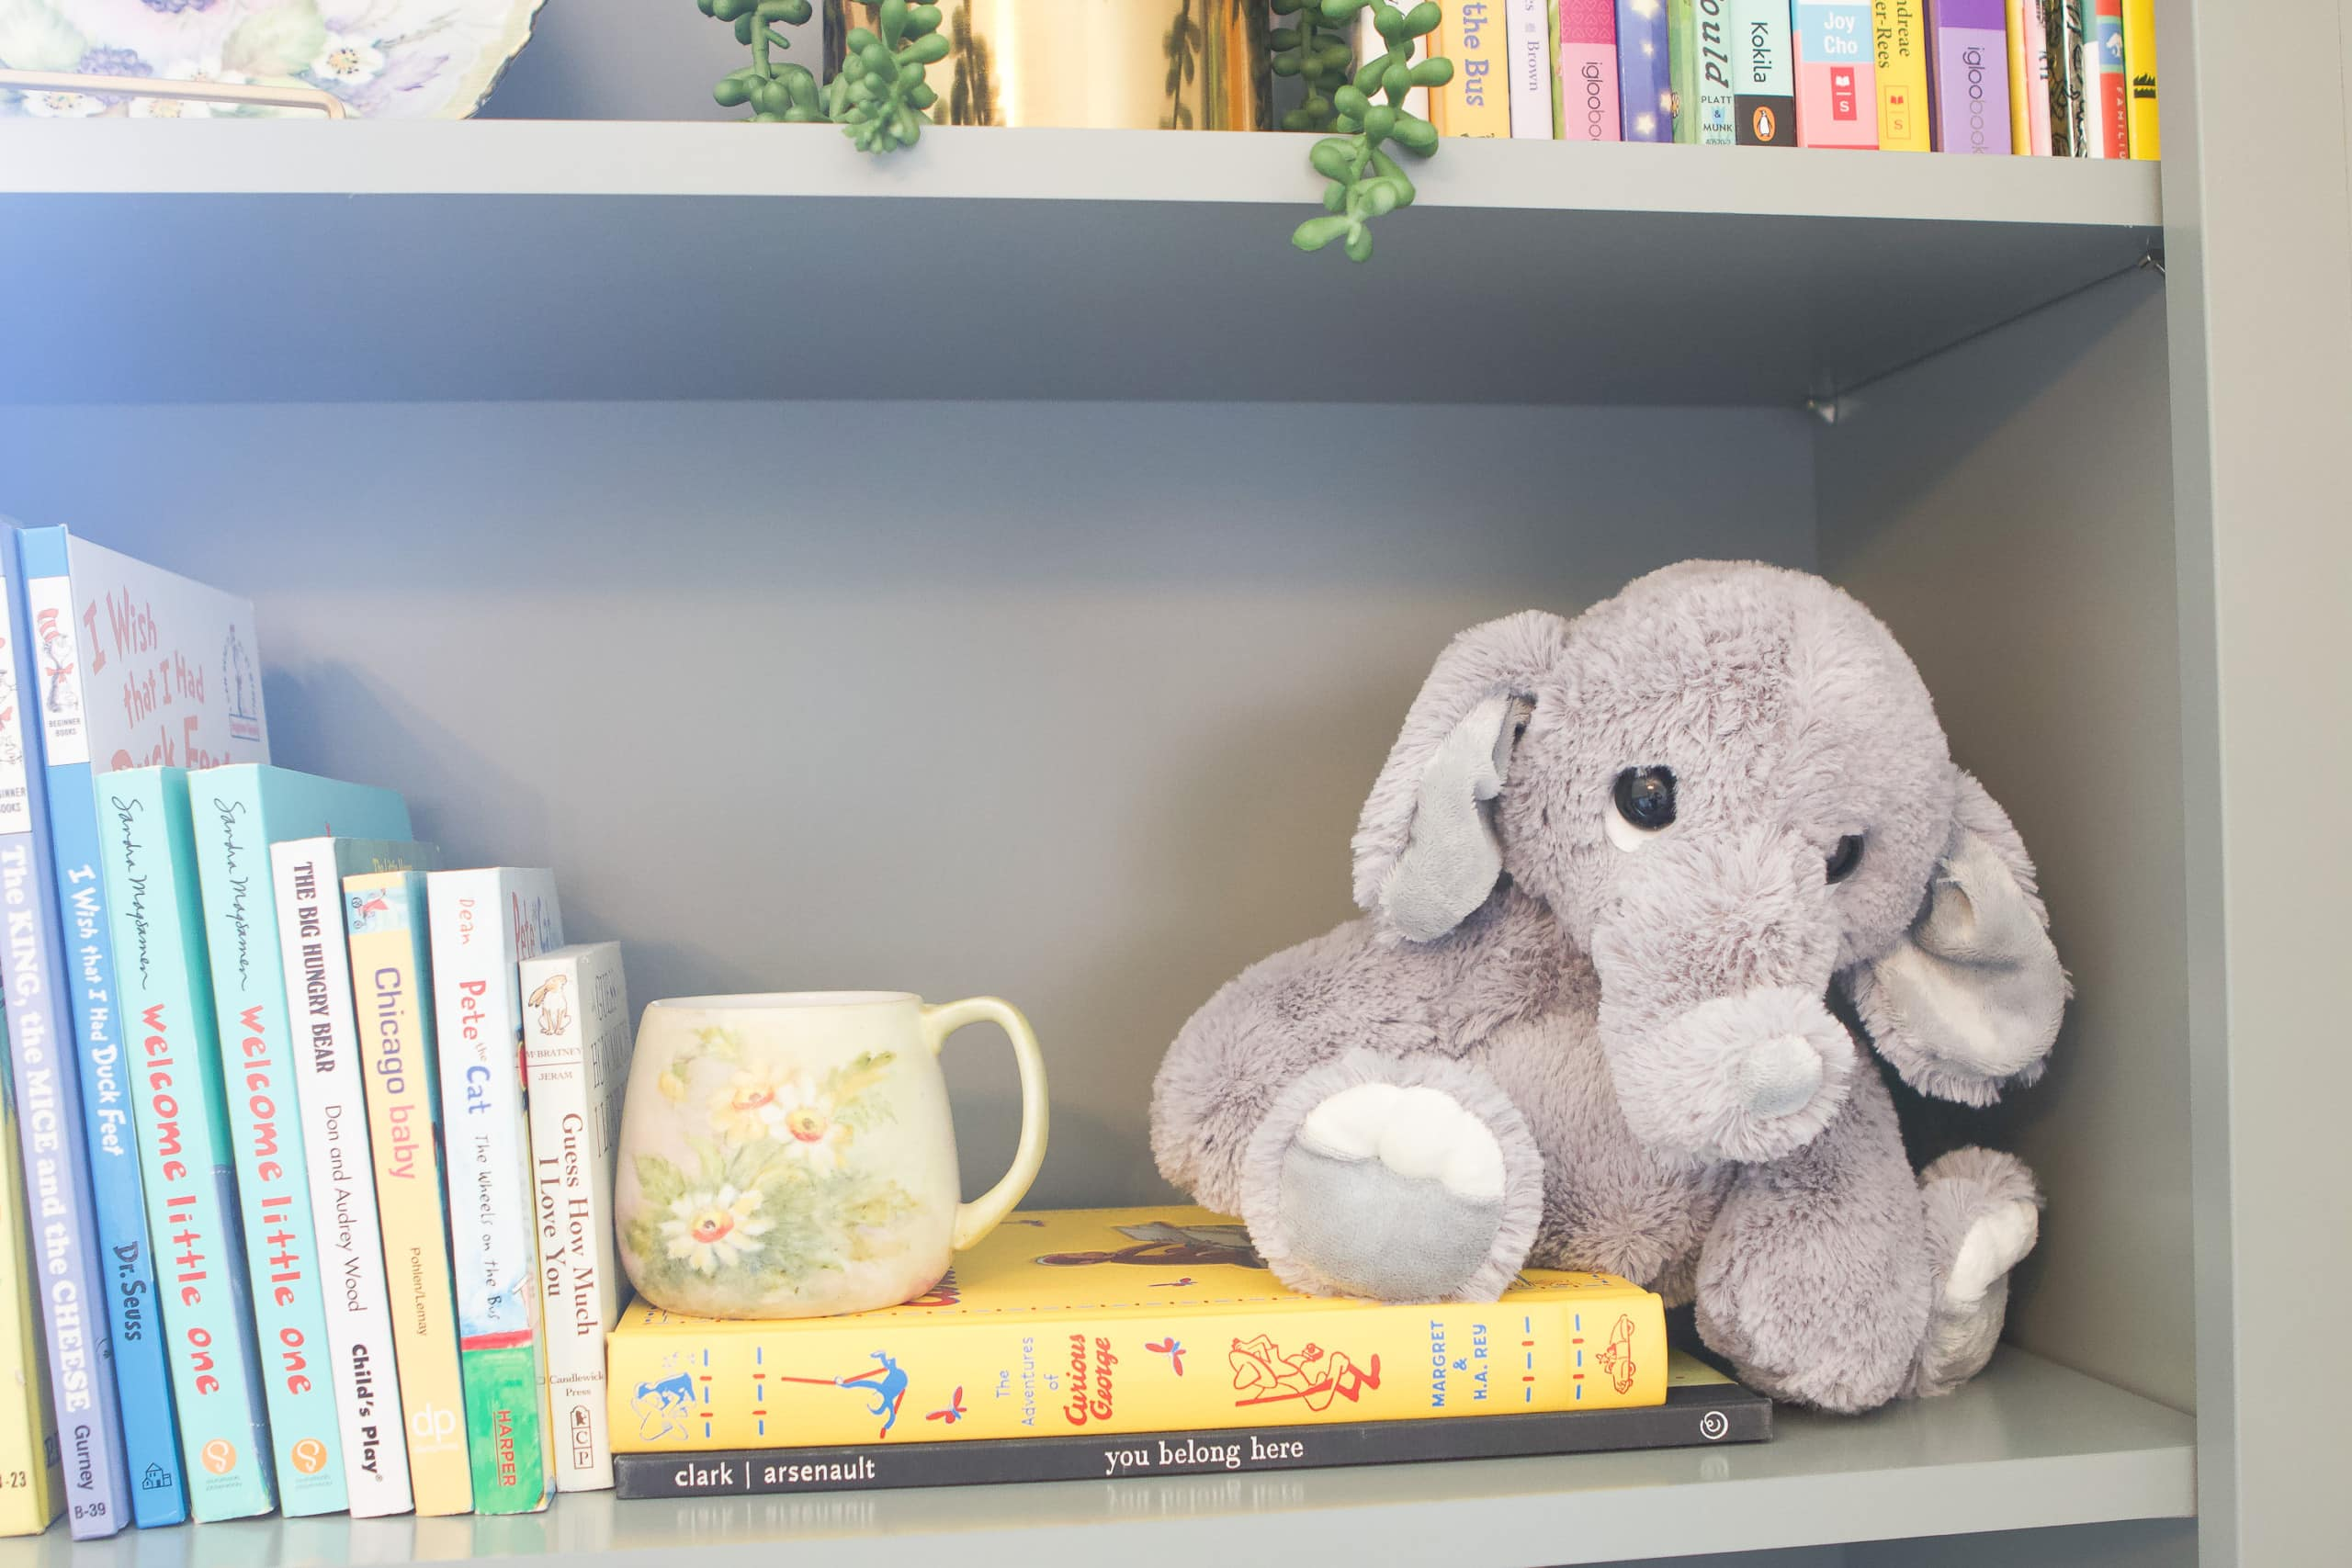 Using books in a nursery